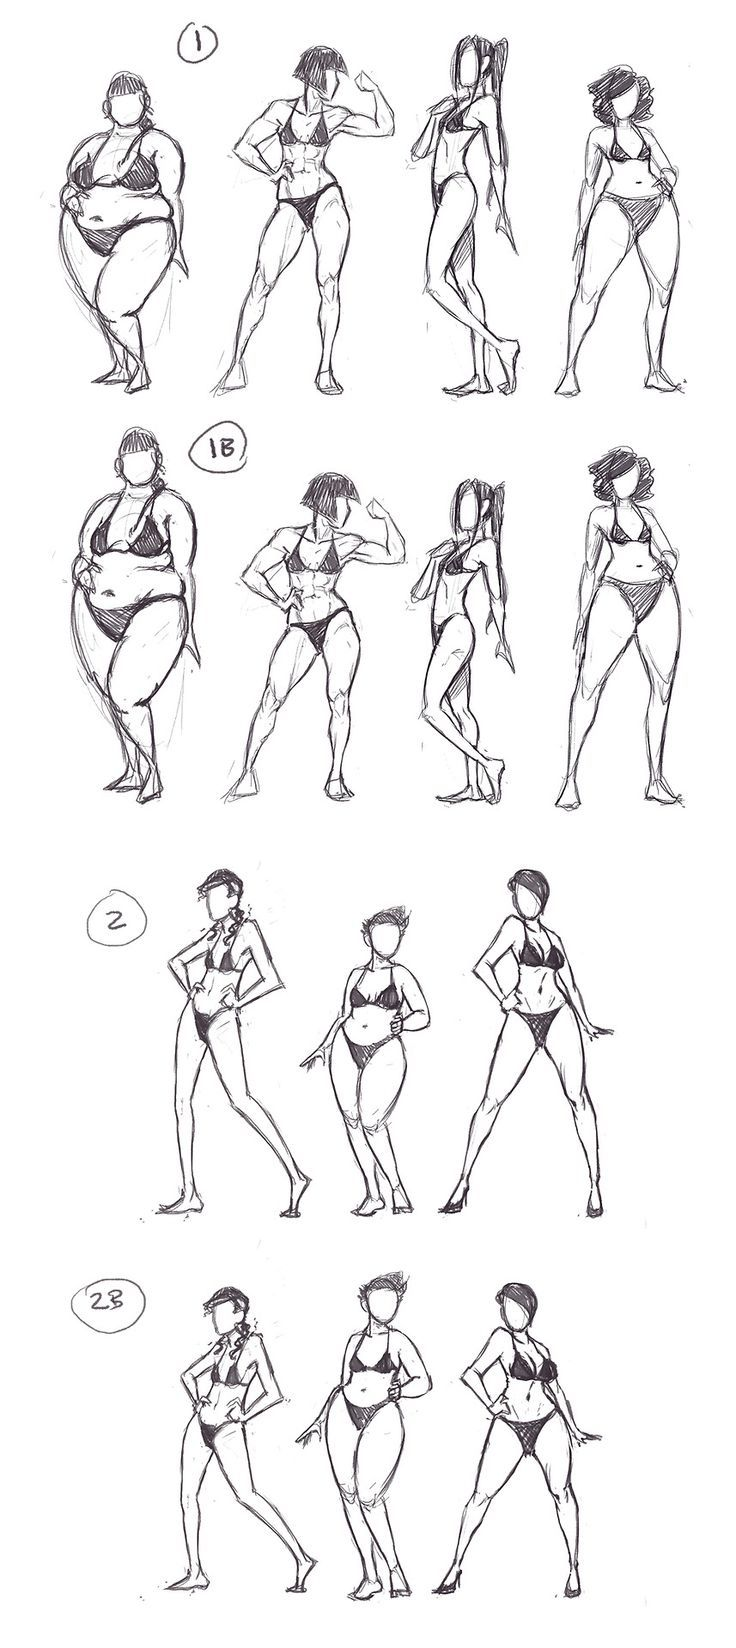 best images about health fitness stuff a plethora of well written essays exist examining the lack of variety in body types in comics especially concerning female characters